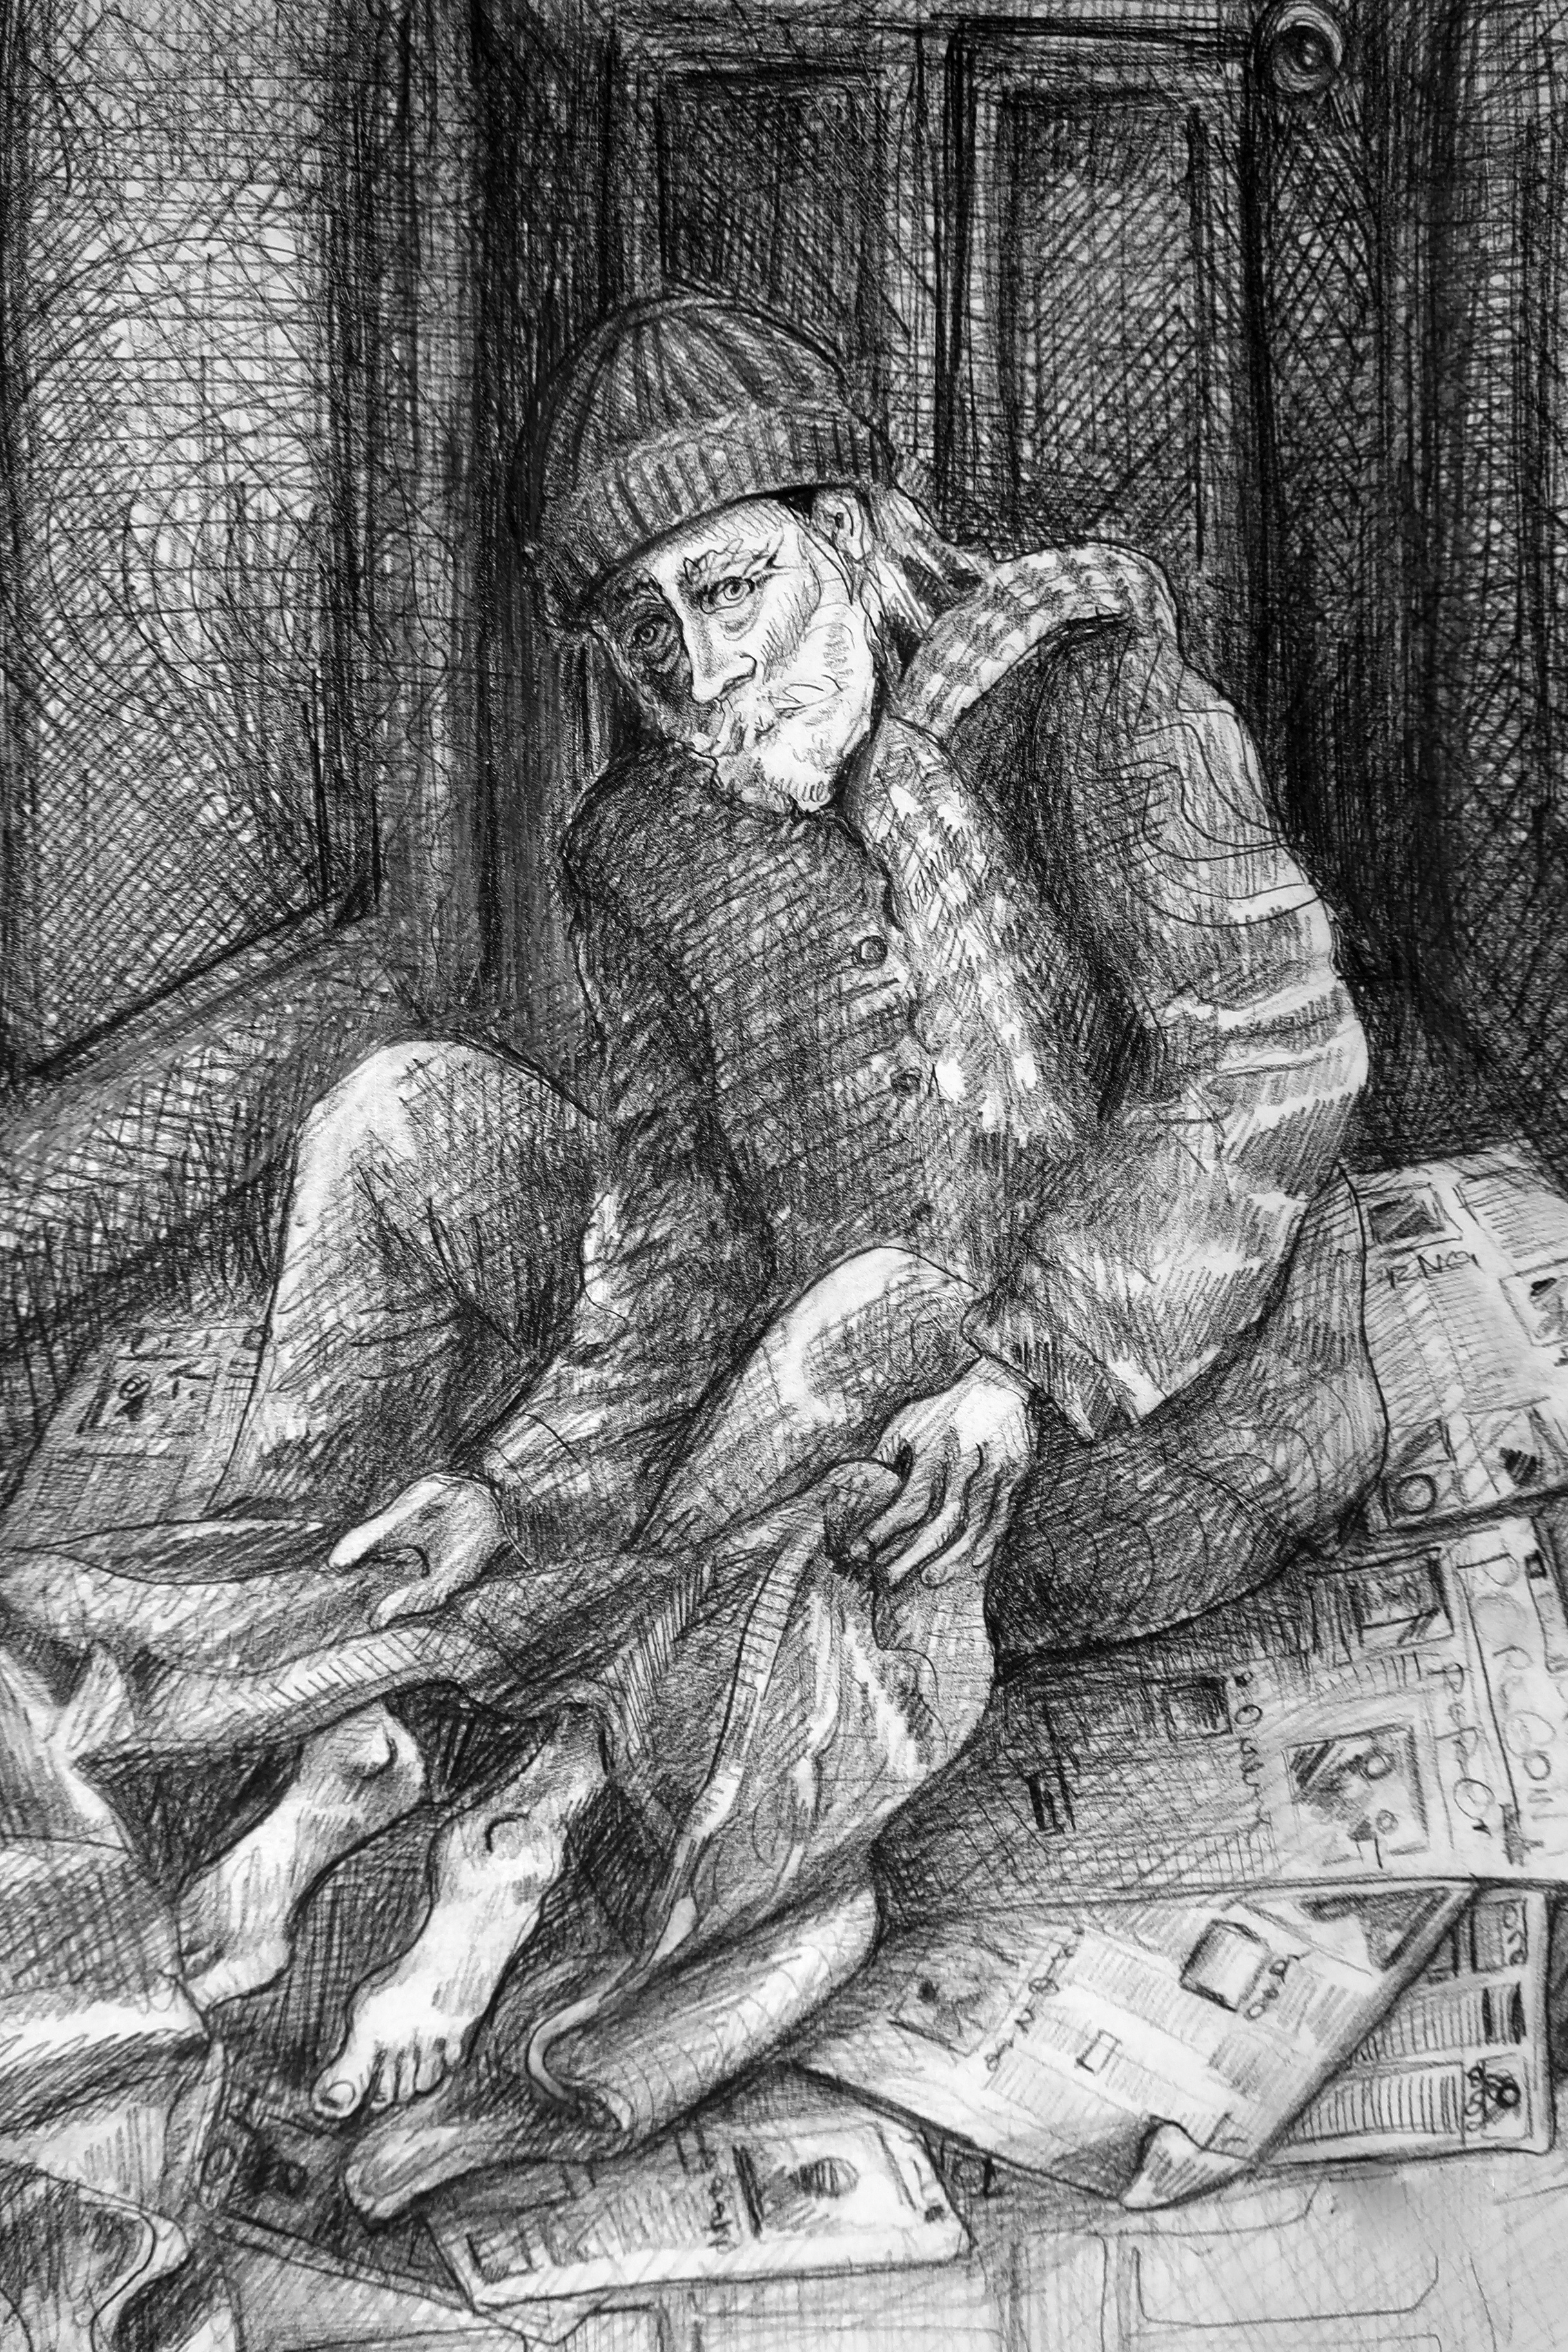 An illustration of a man sleeping on newspapers in a doorway outdoors in Old Town